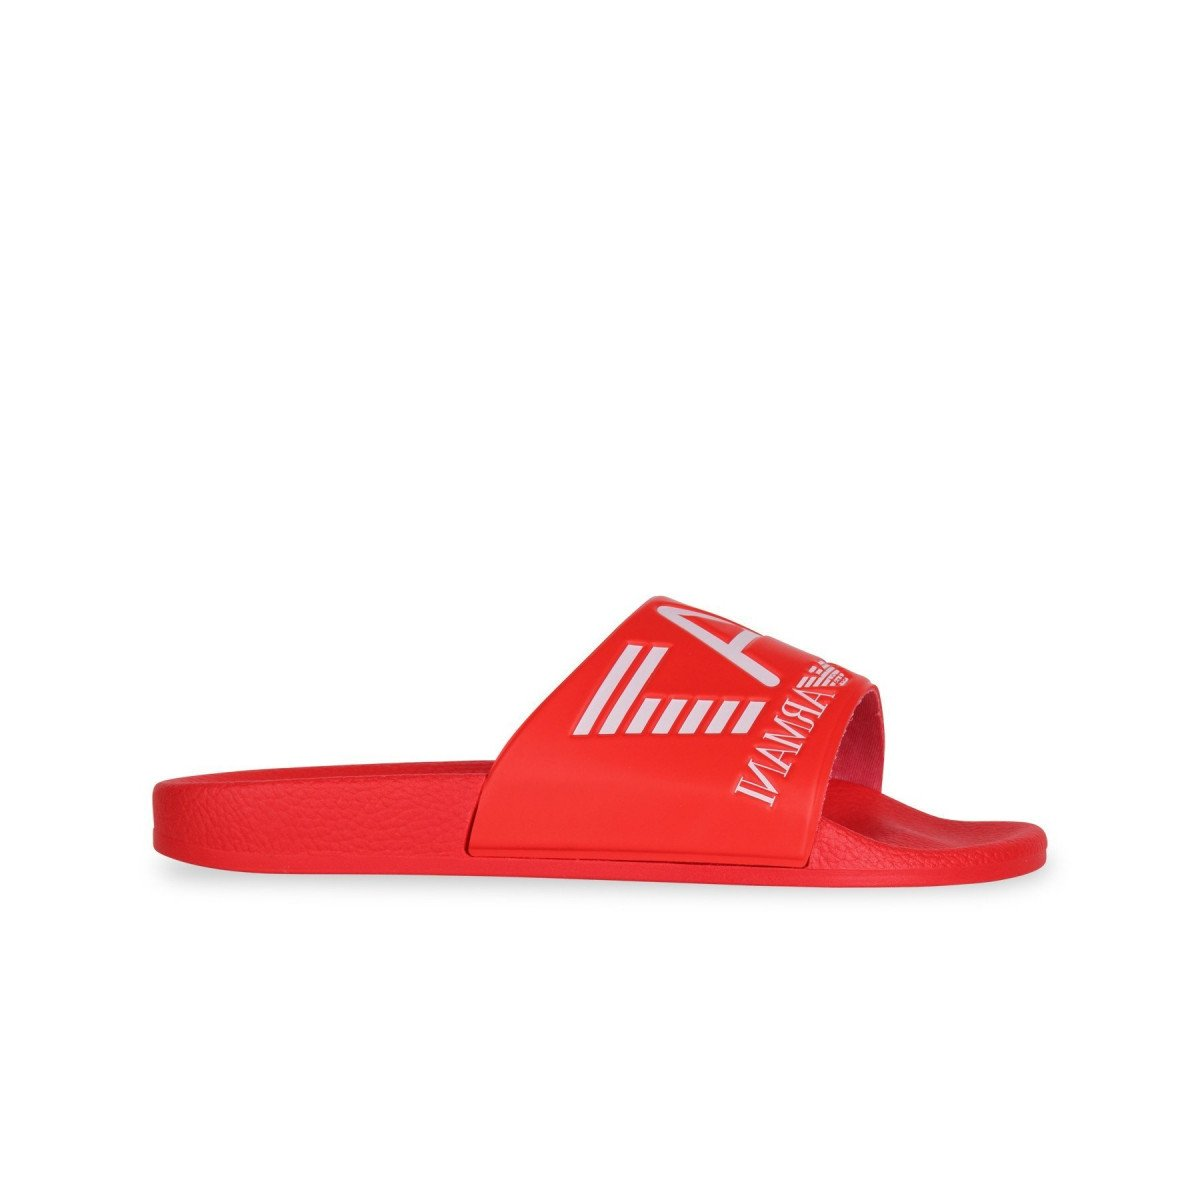 949ae233878c Emporio Armani EA7 Red Slides Slippers 905012 8P215 6(40)  Amazon.co.uk   Shoes   Bags